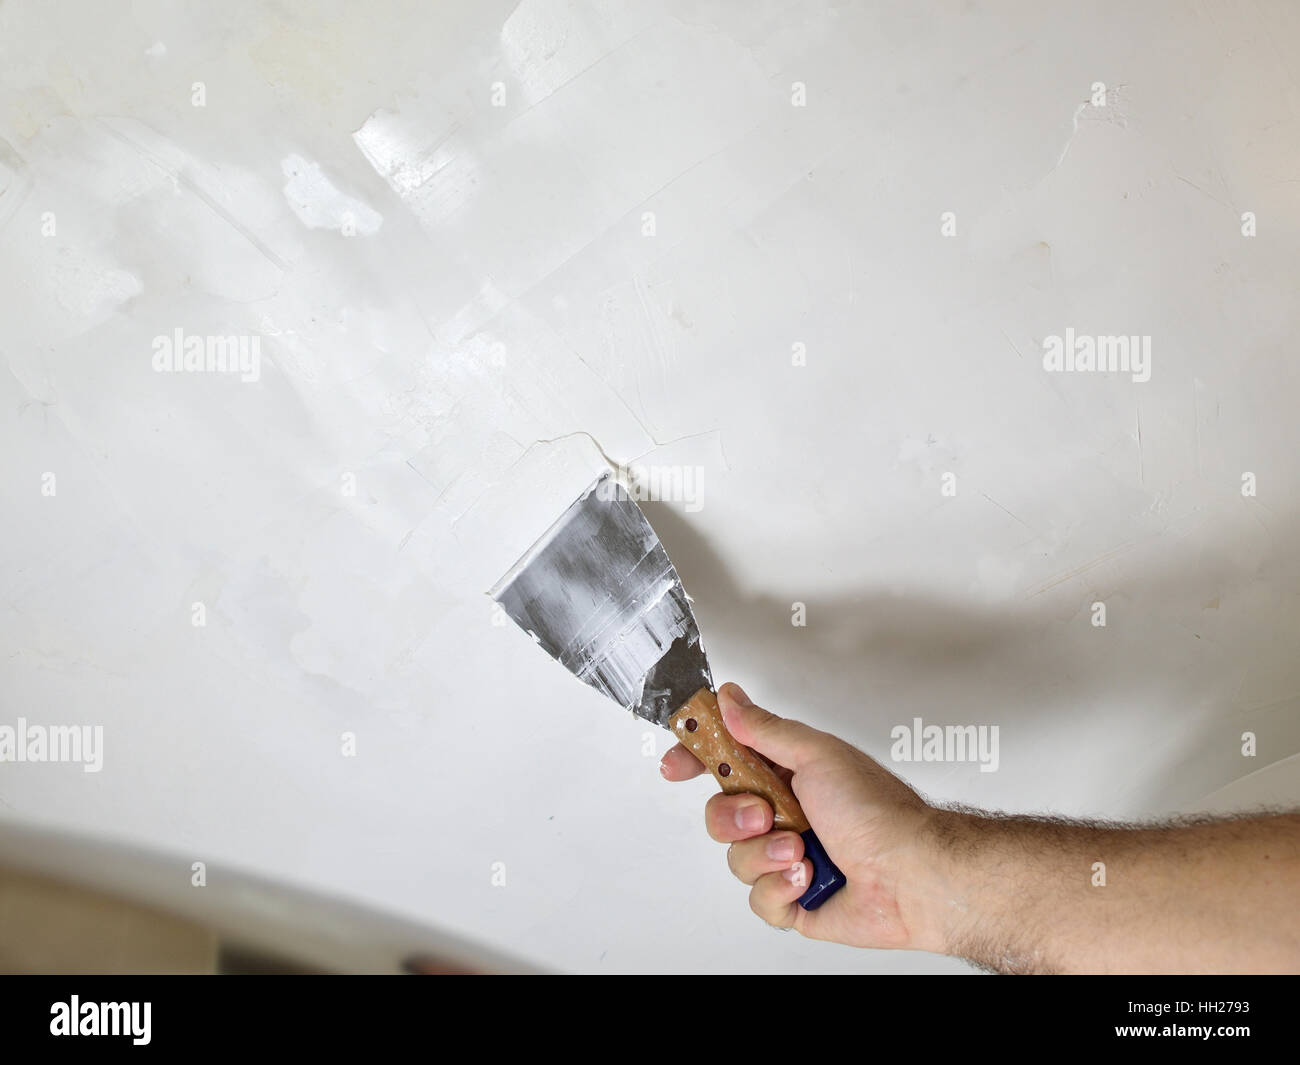 plaster plasterwork ceiling stockfotos plaster plasterwork ceiling bilder alamy. Black Bedroom Furniture Sets. Home Design Ideas